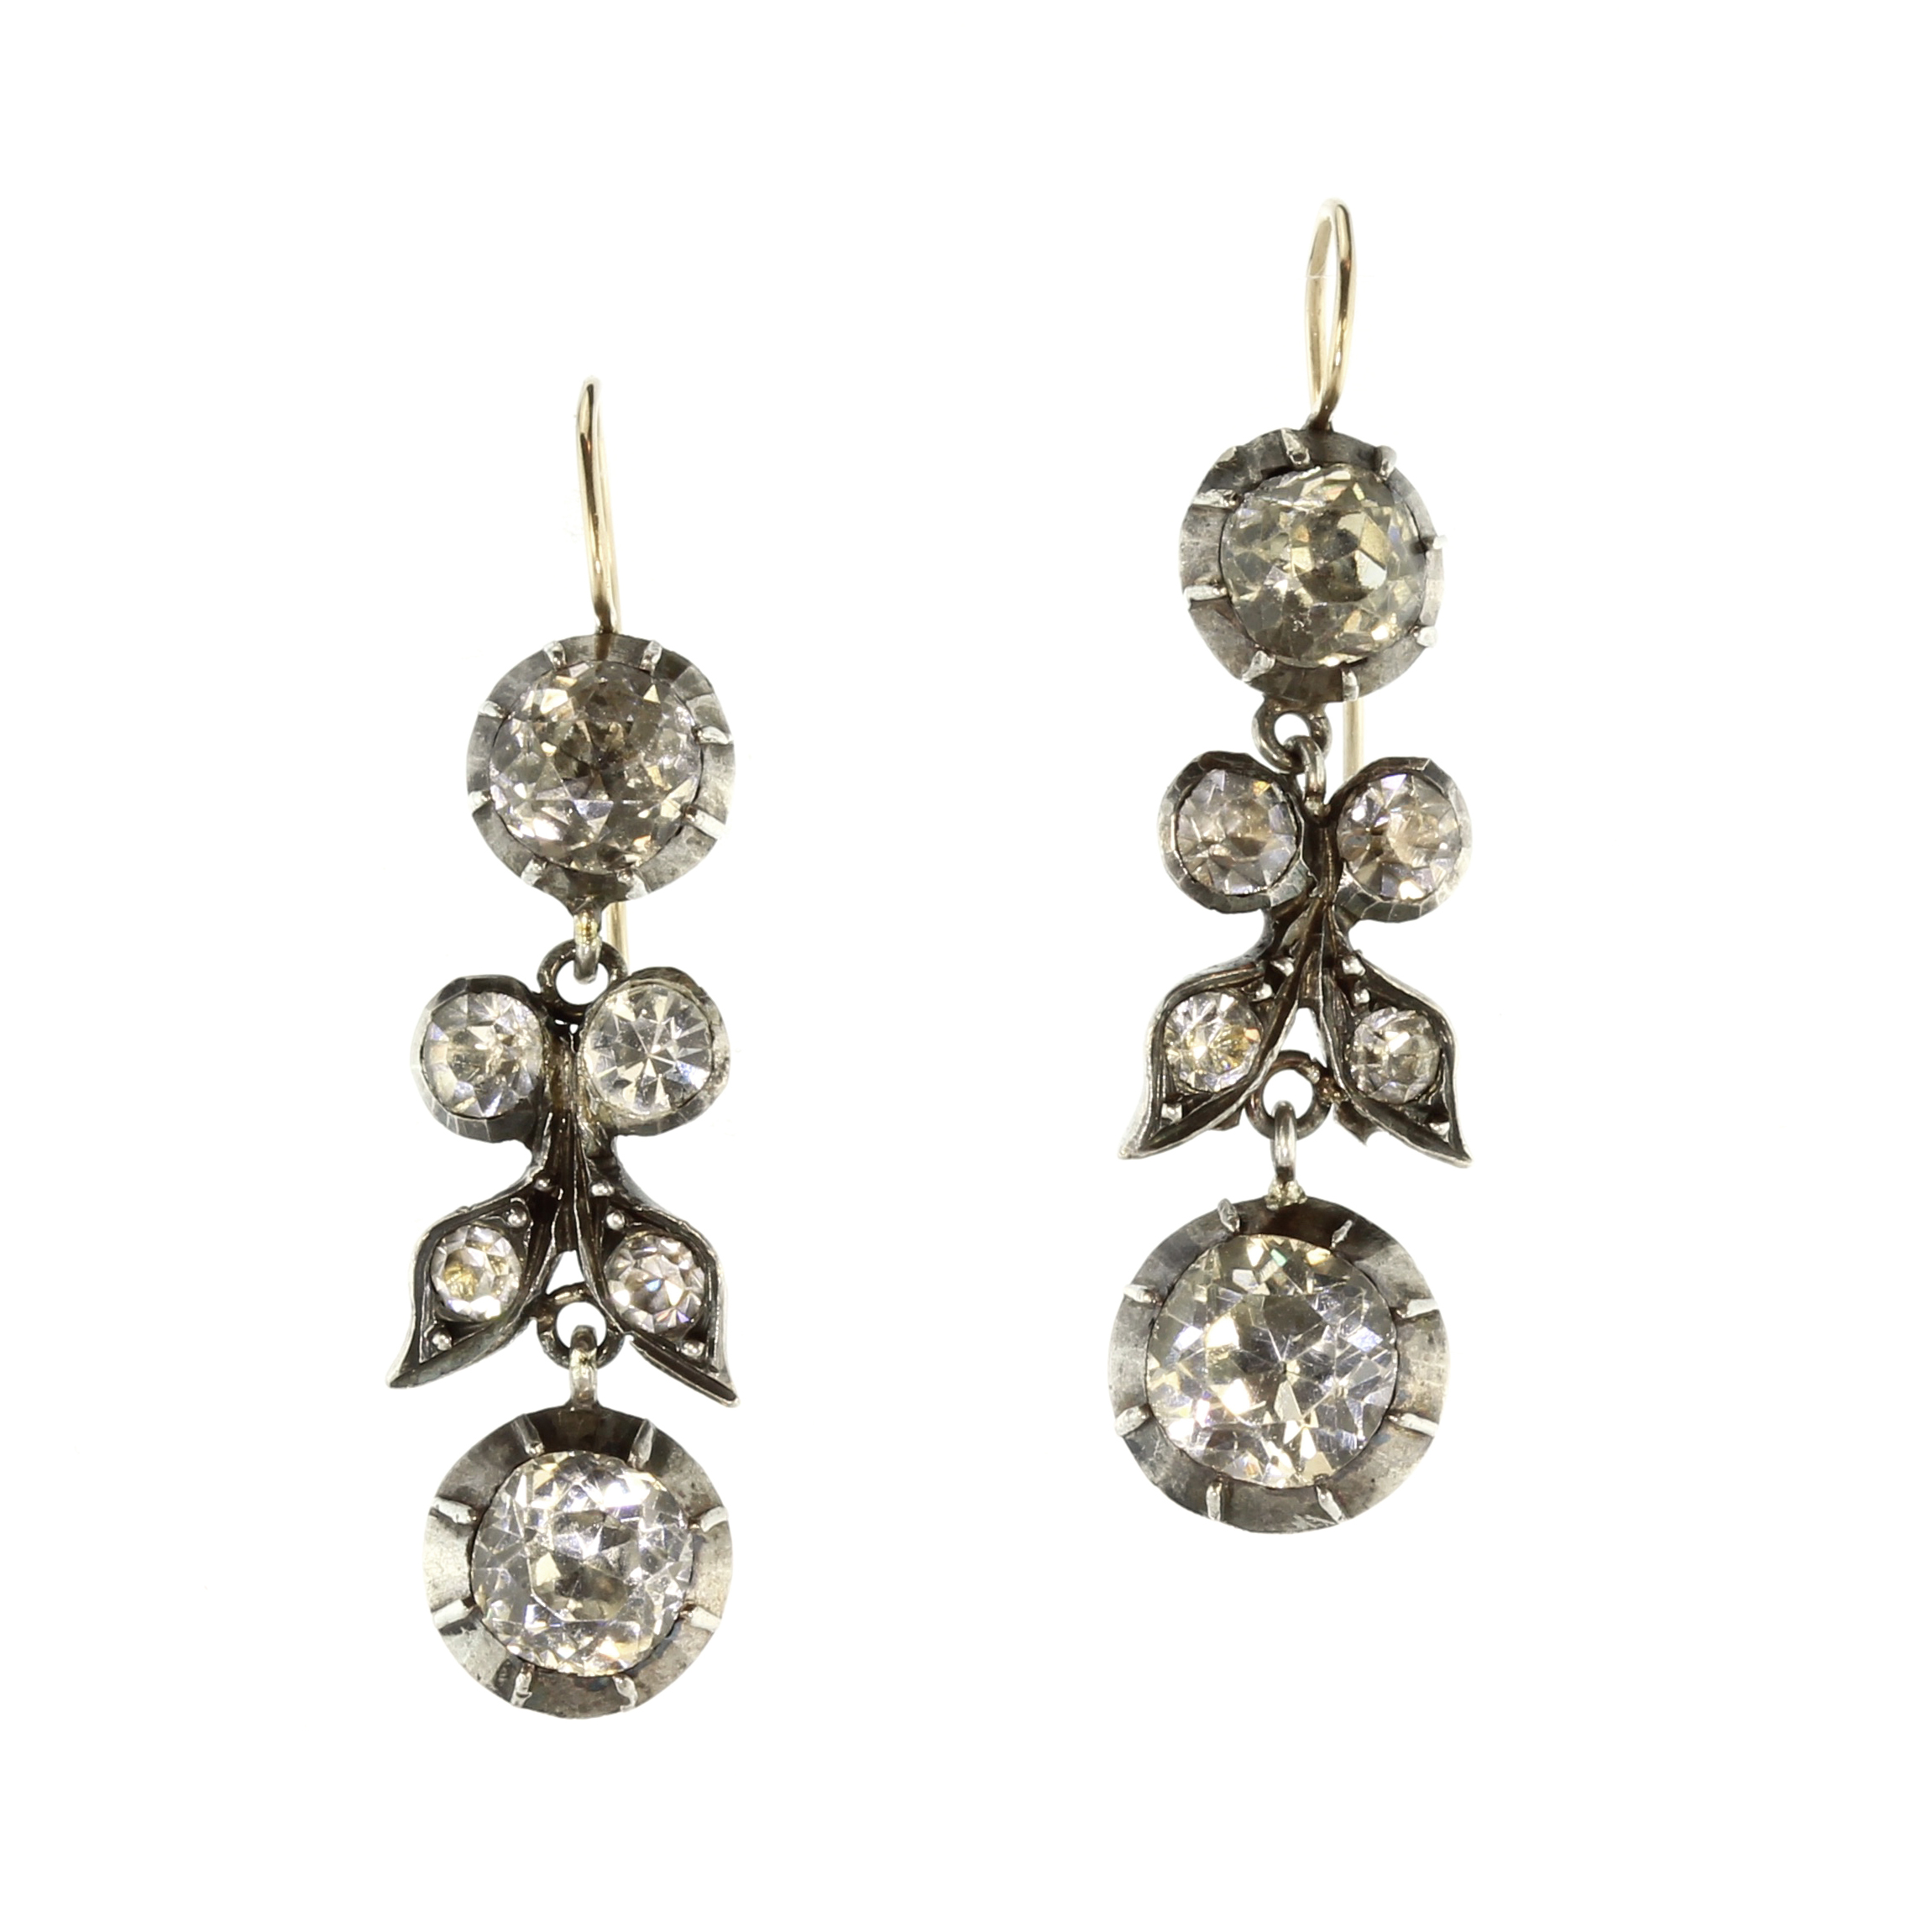 Los 15 - A pair of antique Georgian French Paste drop earrings in Sterling Silver each formed as a pendant